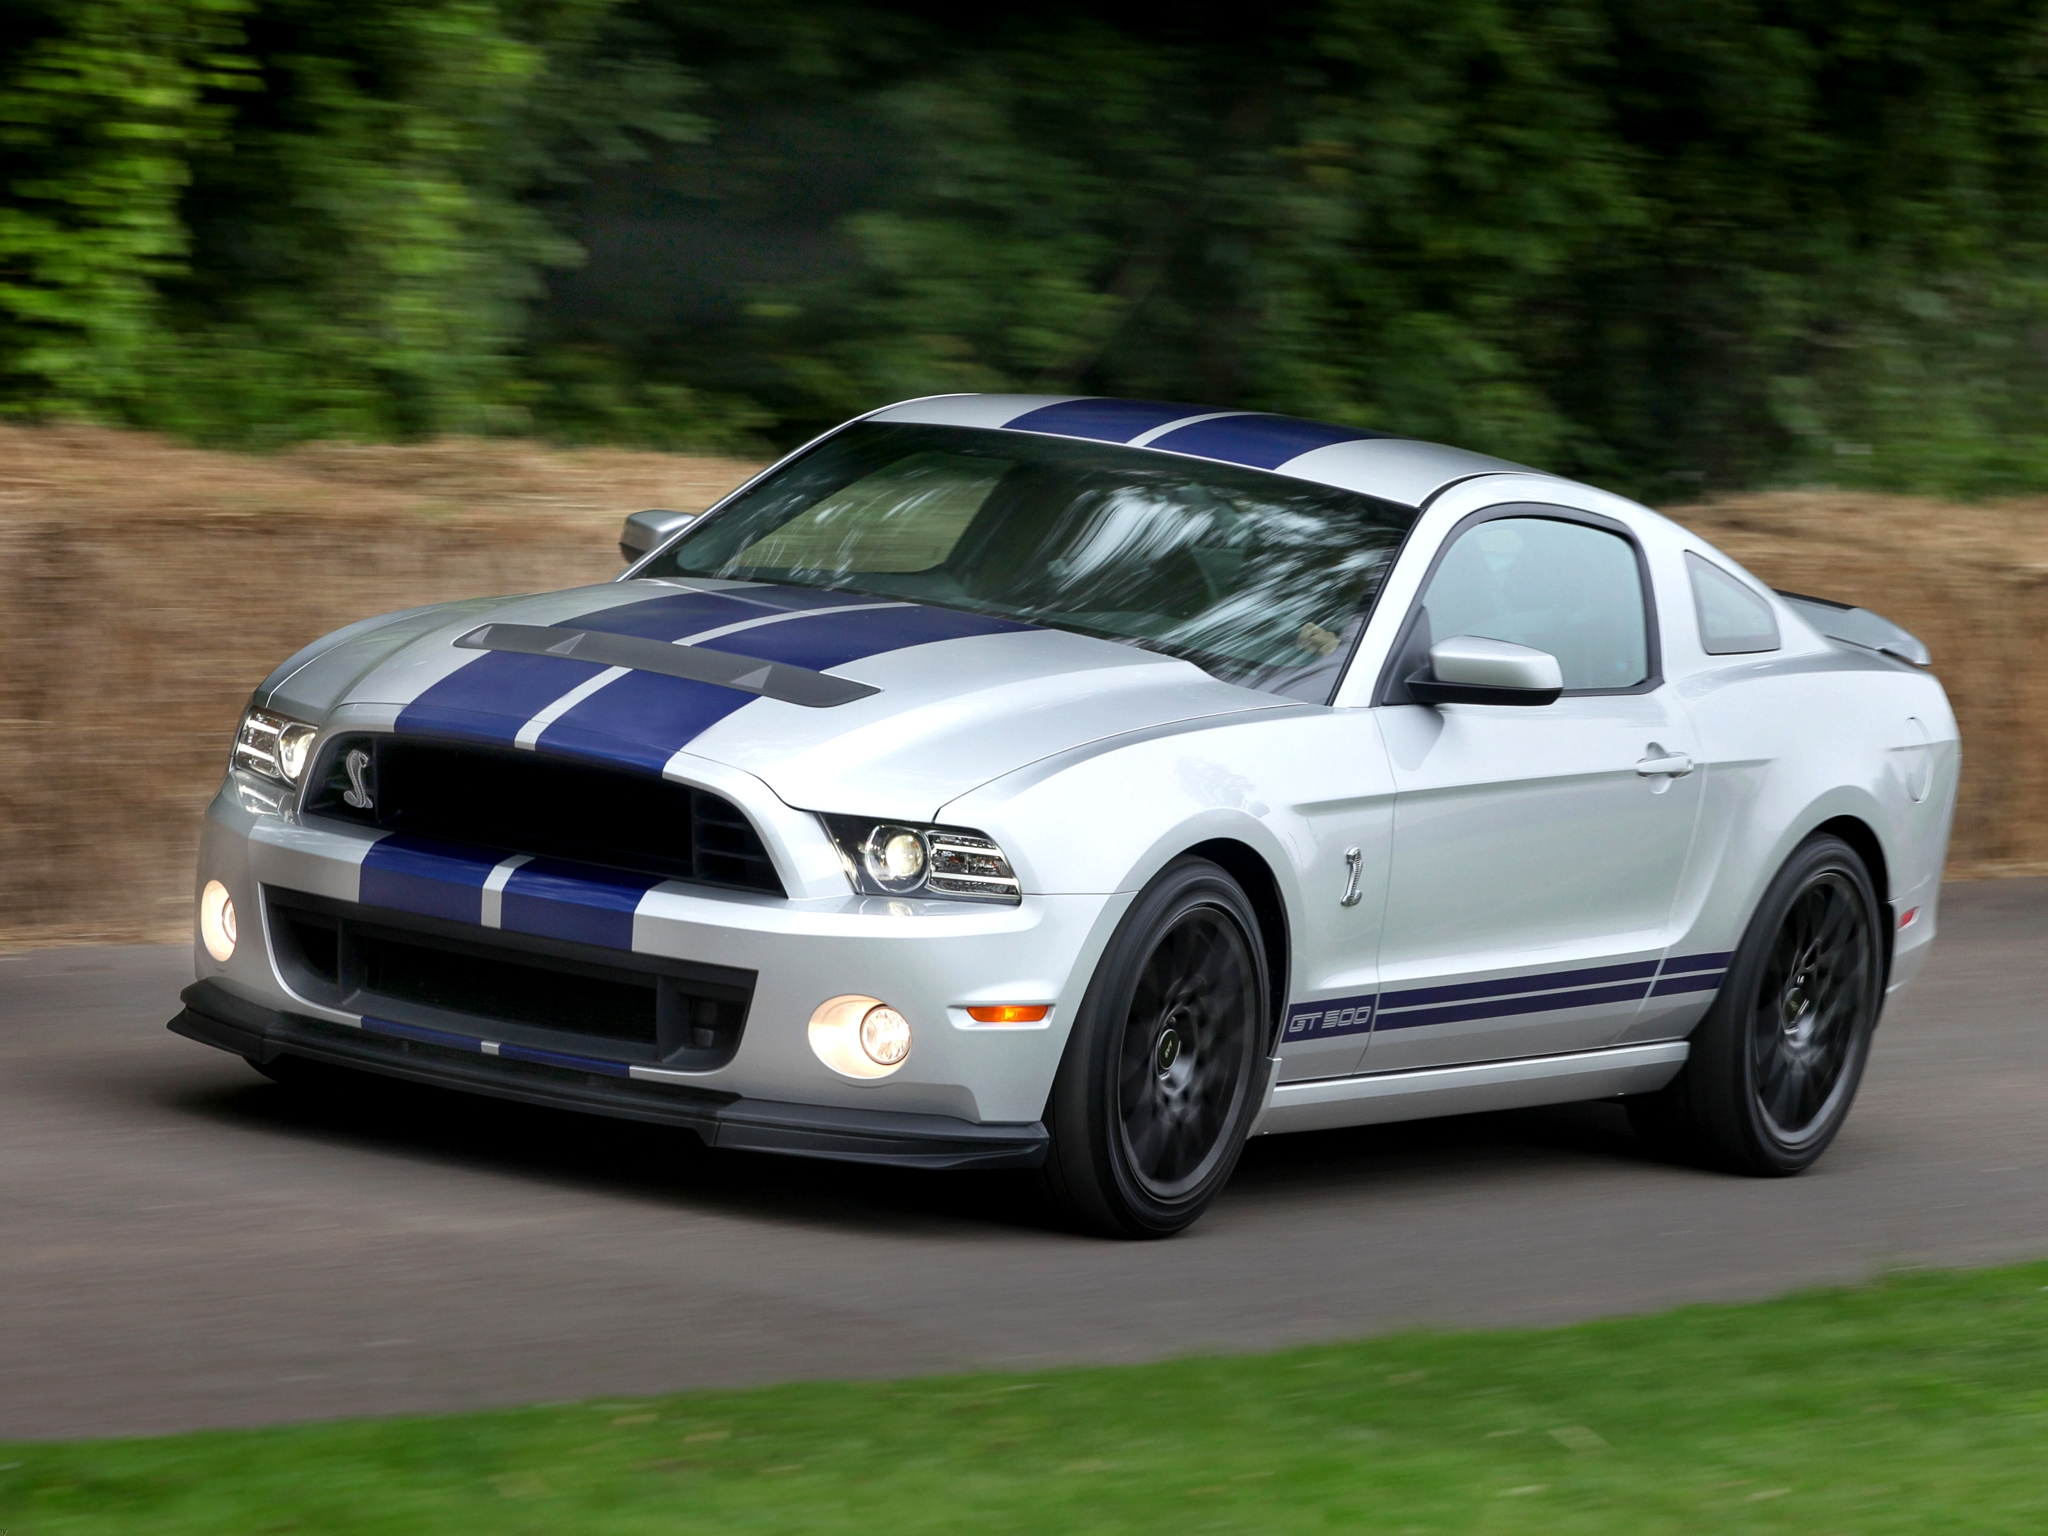 2012 Ford Shelby Gt500 #6